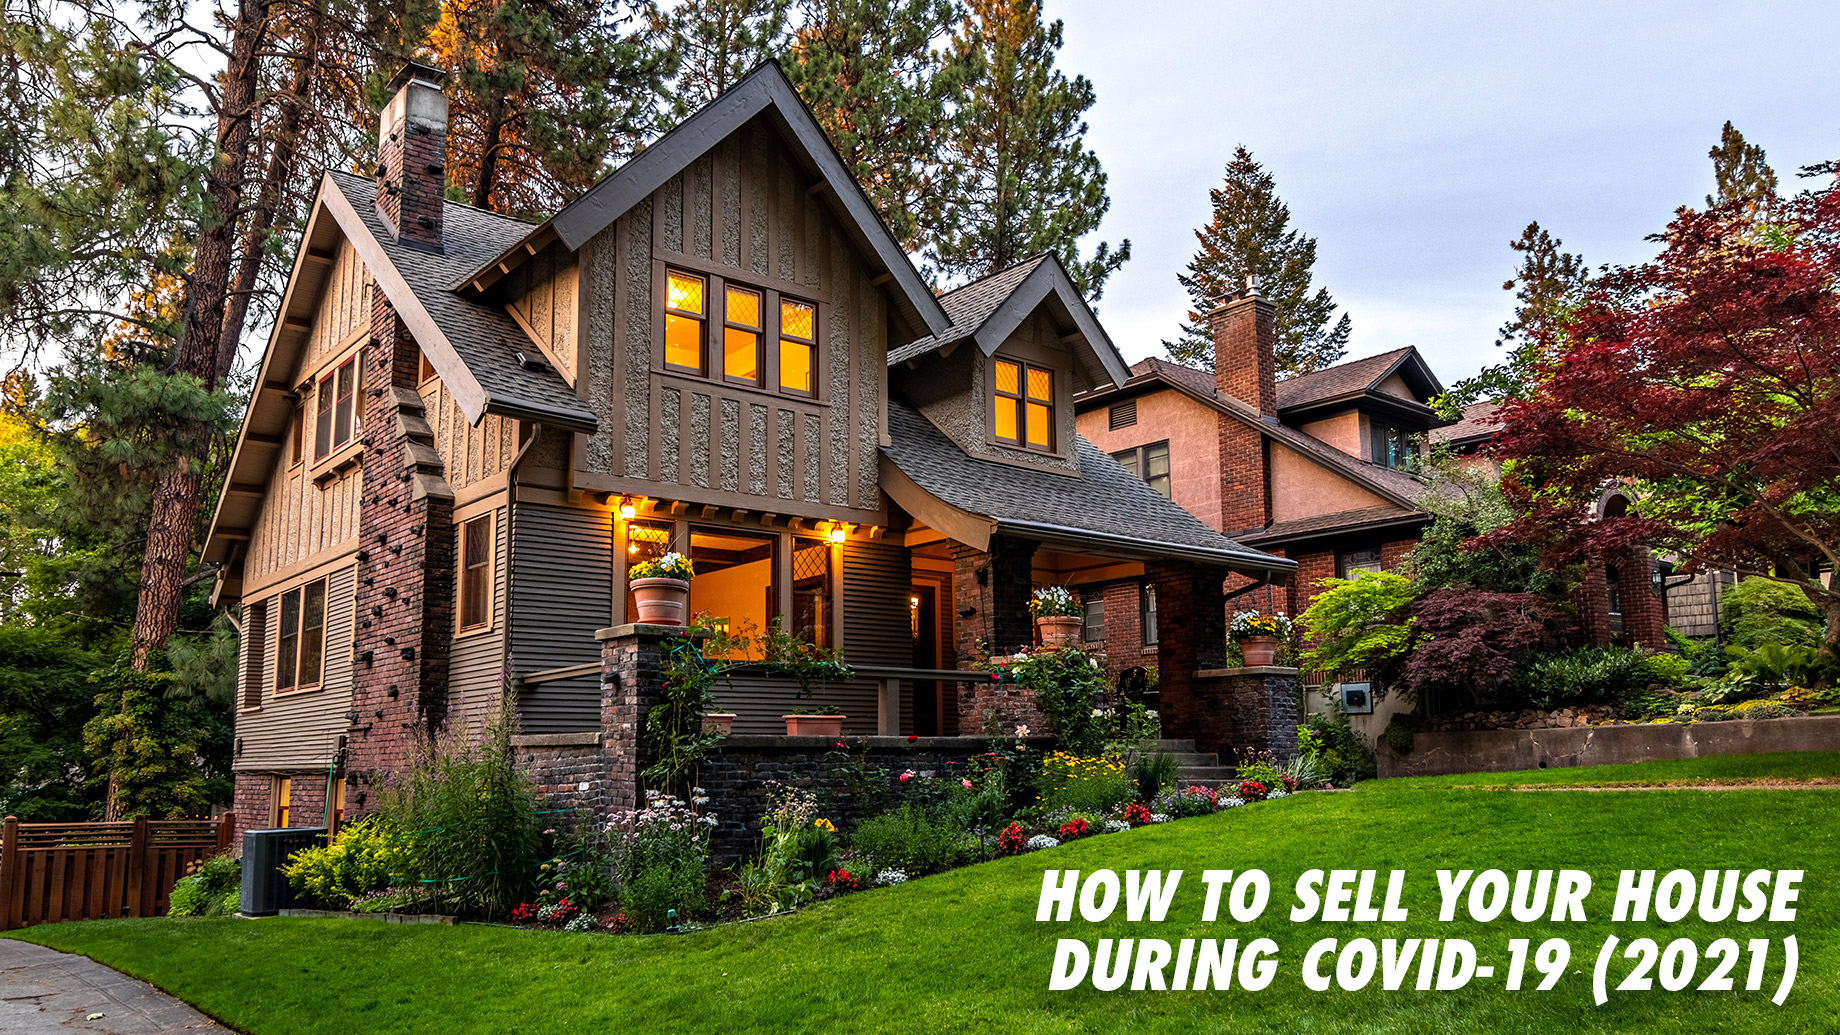 How to Sell Your House During COVID-19 (2021)